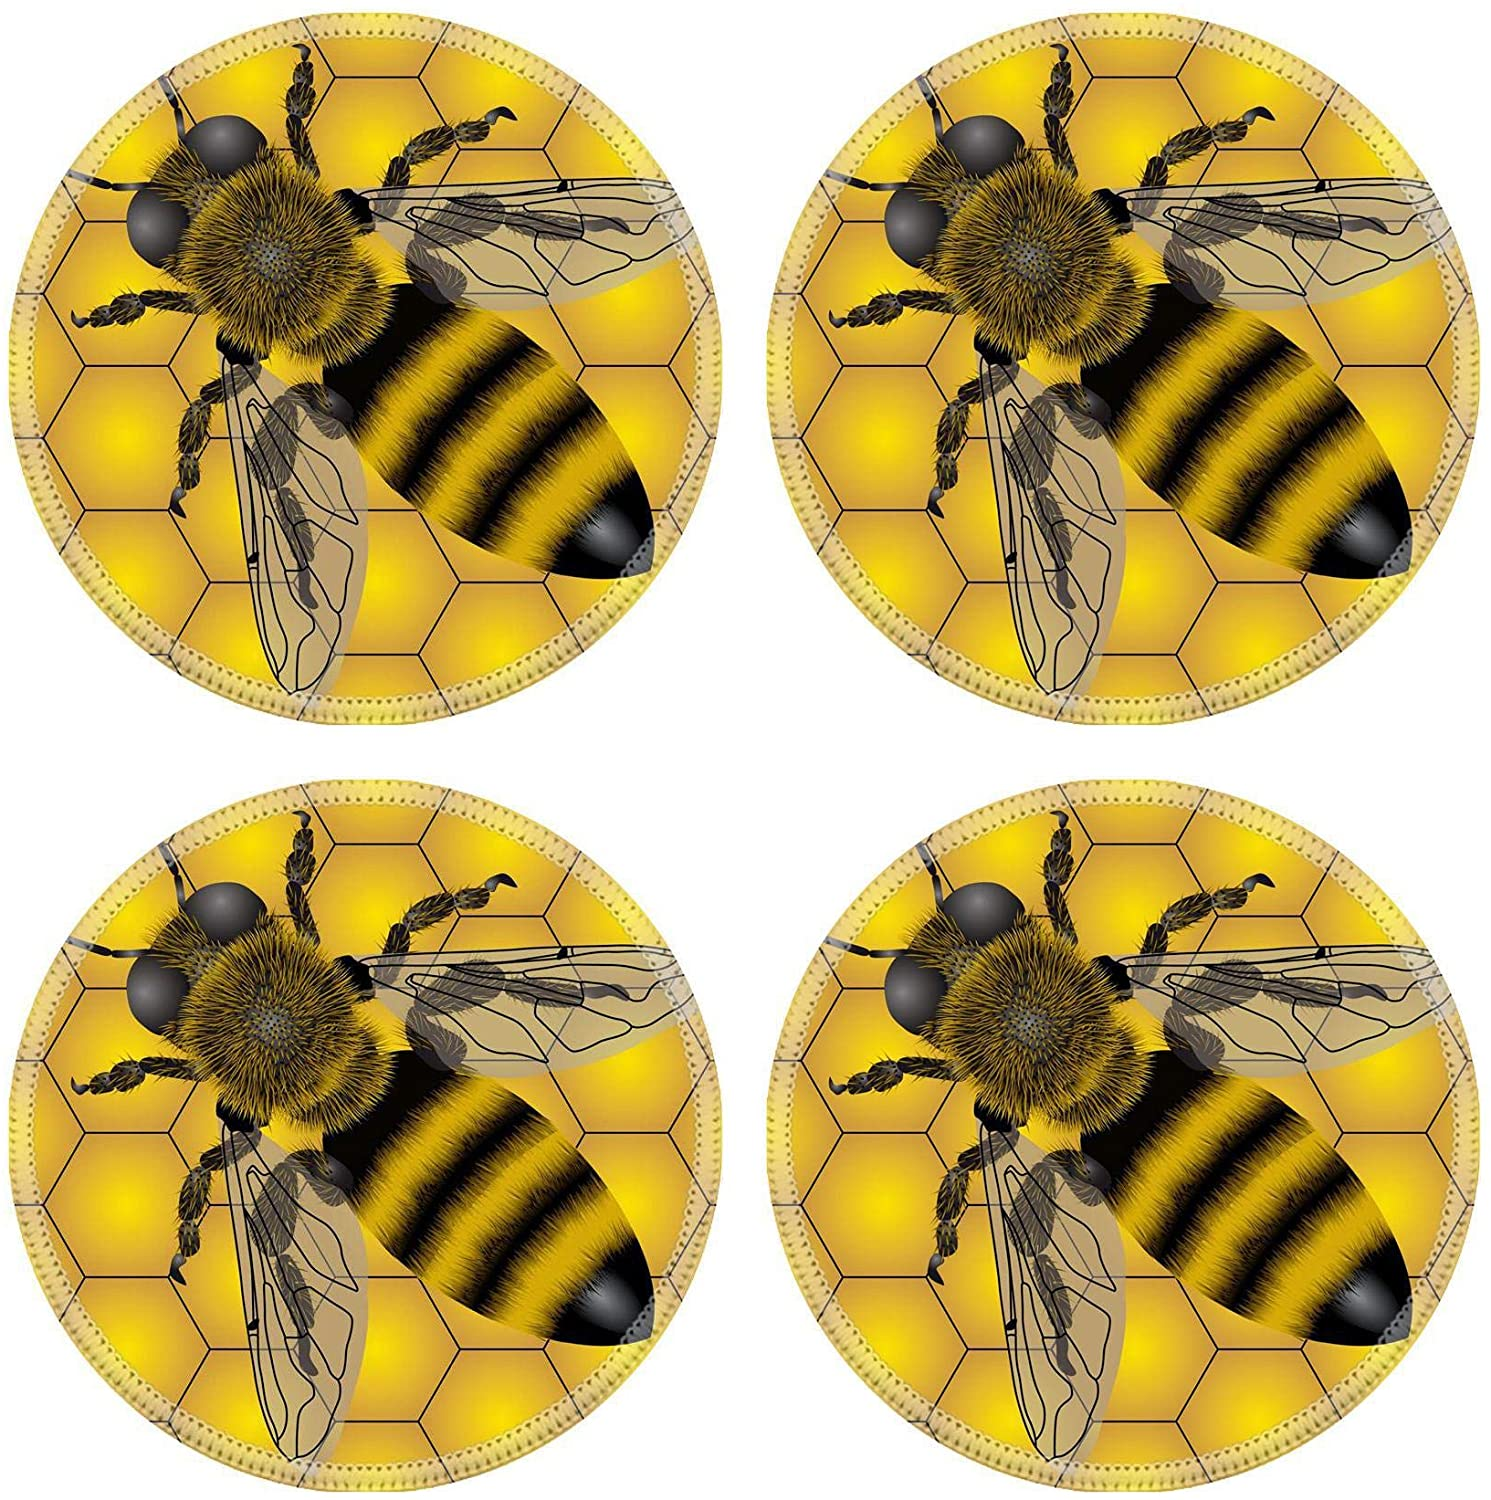 MSD Natural Round Drink Coaster set of 4 Image ID: 4930792 Seamless of bee